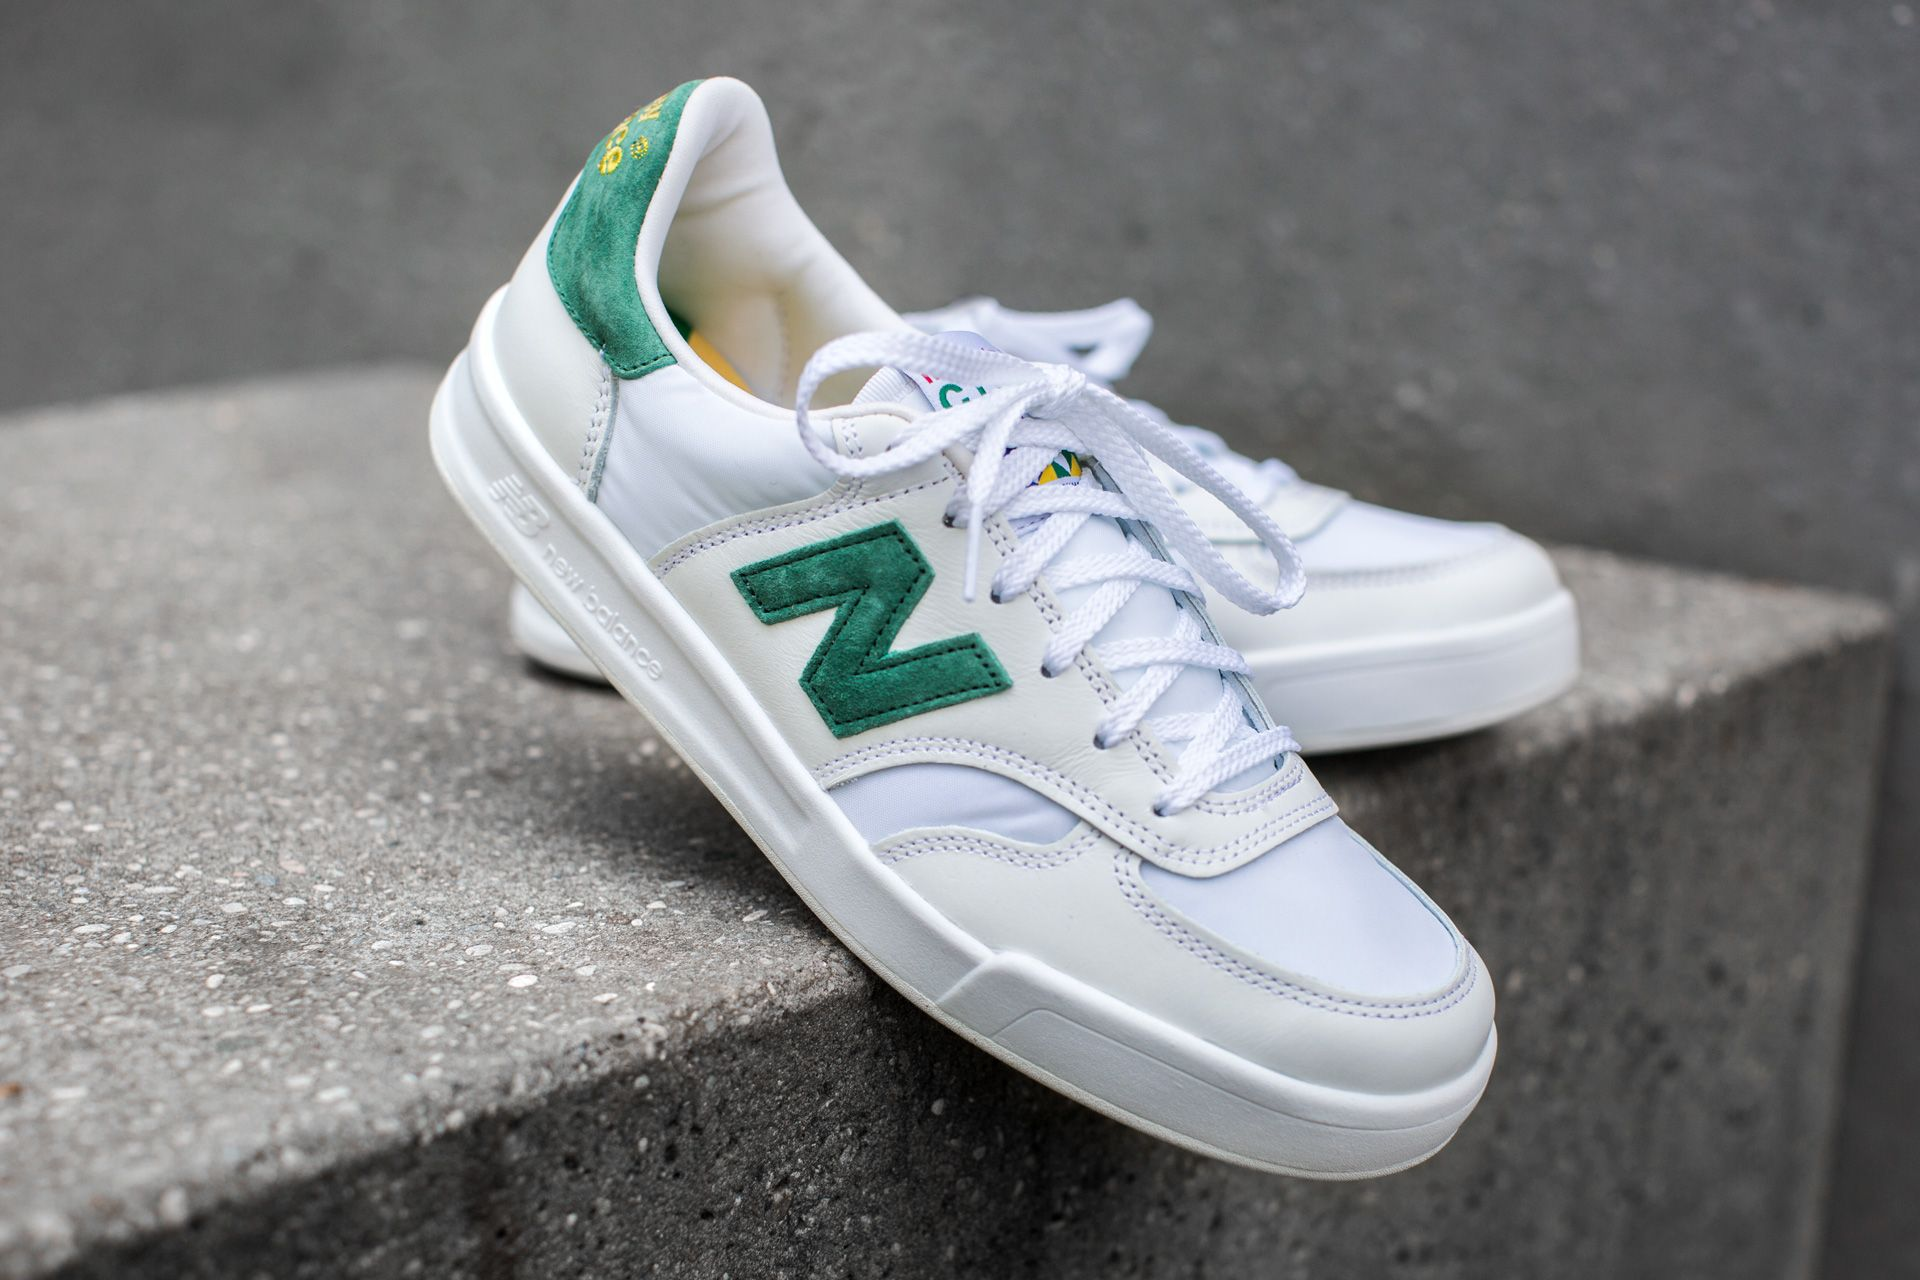 New Balance CT300 Cumbria Pack | Sneakers, New balance ...